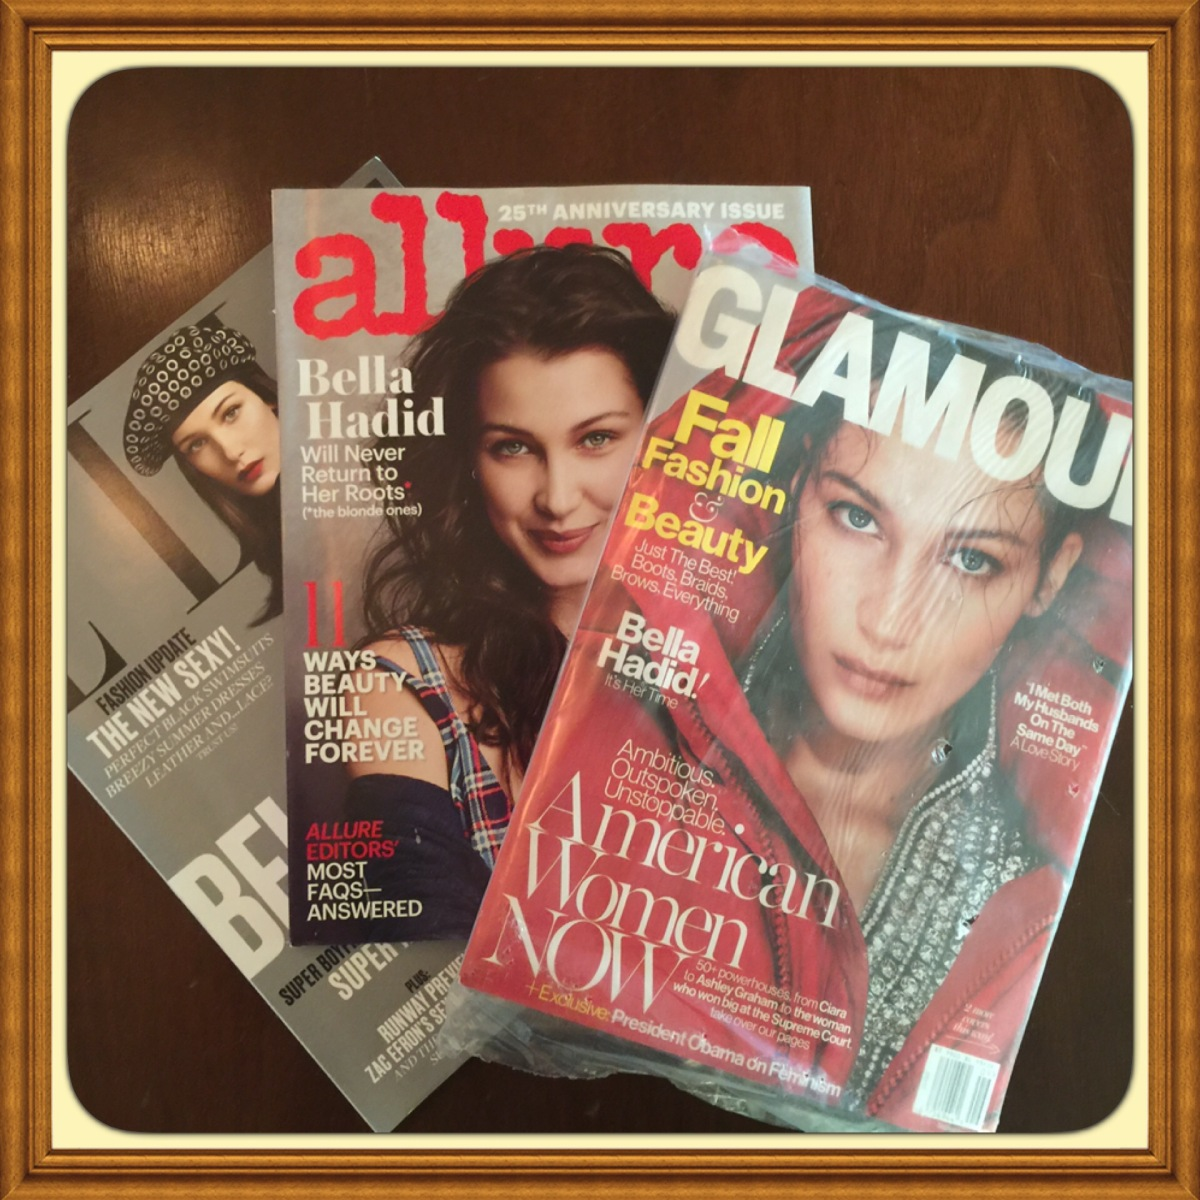 Lot X3 BELLA HADID  Magazines Glamour, Elle & Allure 2016 Brand New Issues Celebrity Fan Collectible Issues #TT911-MGBUN-187-3